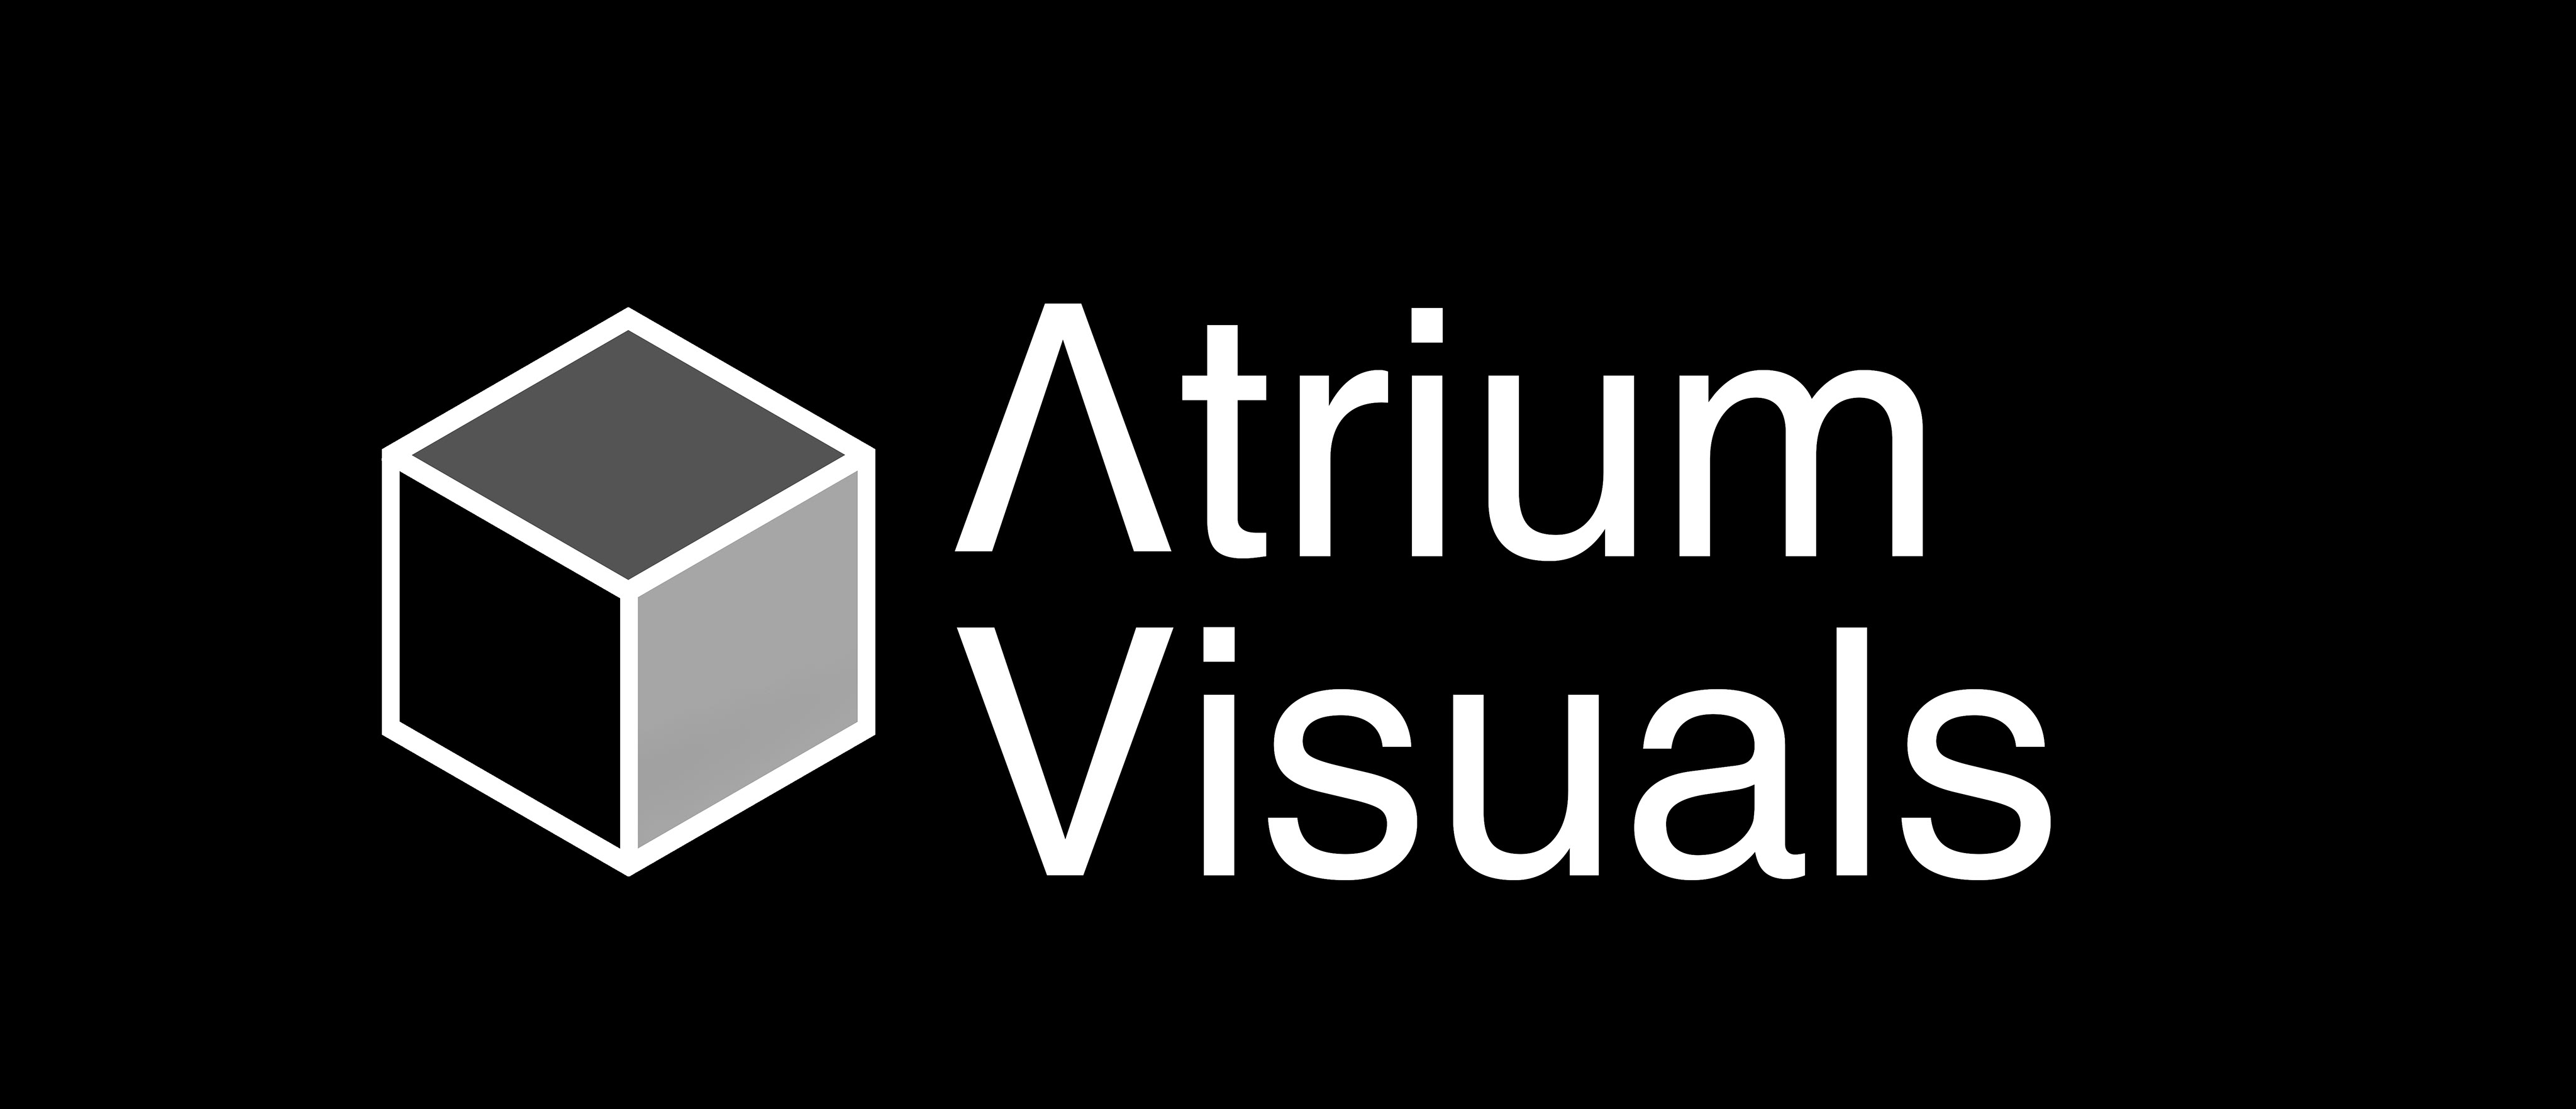 Atrium Visuals Ltd